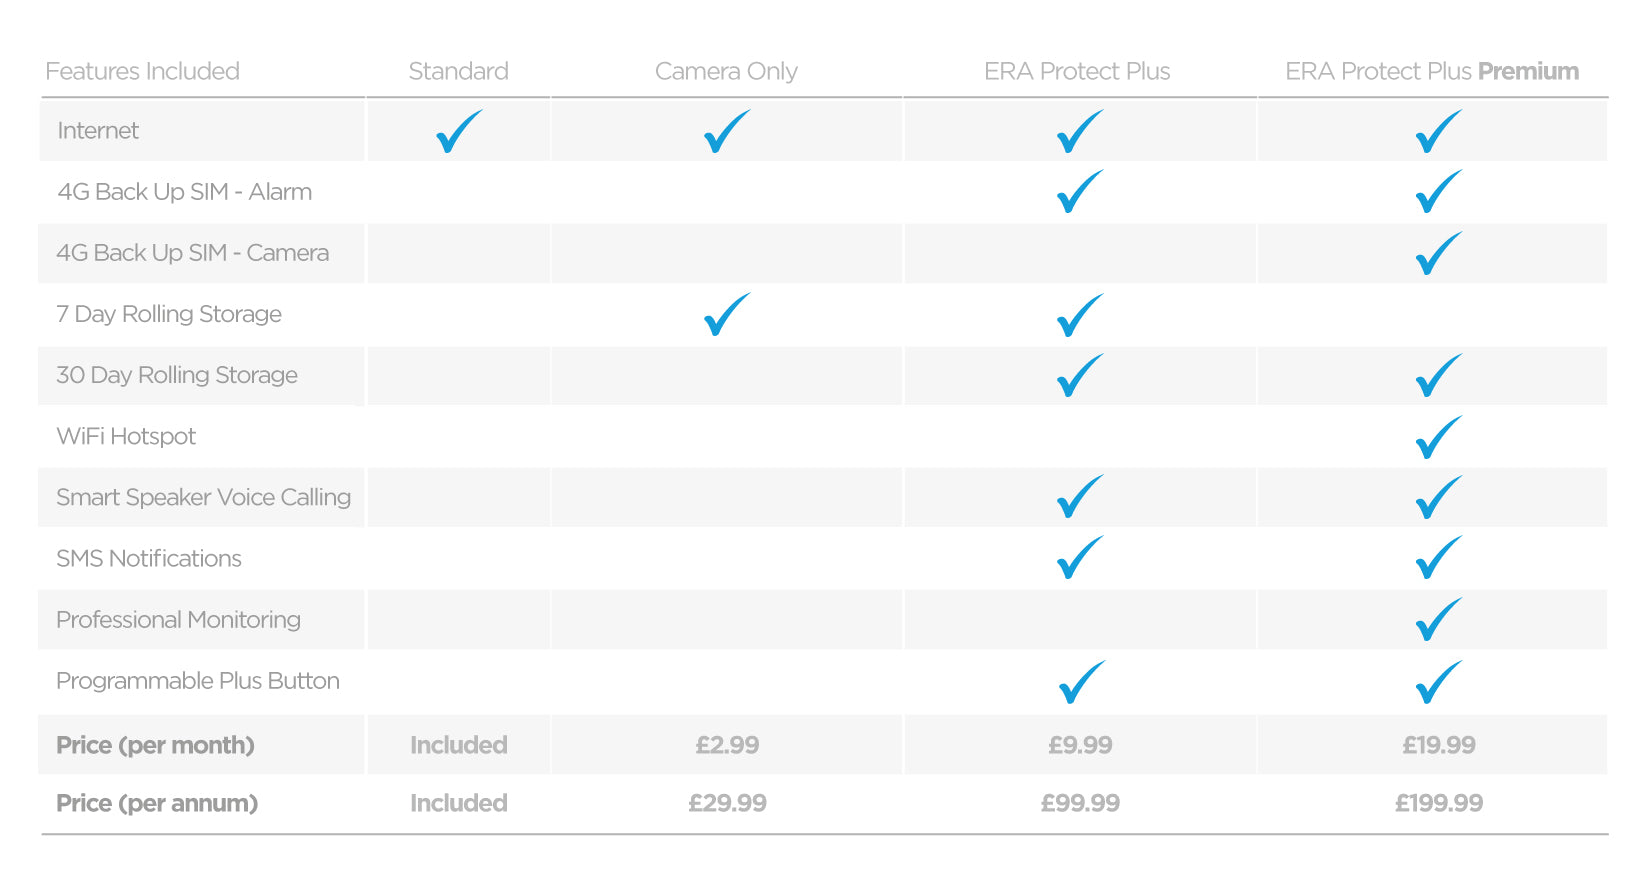 ERA Protect Plus Subscription Comparison